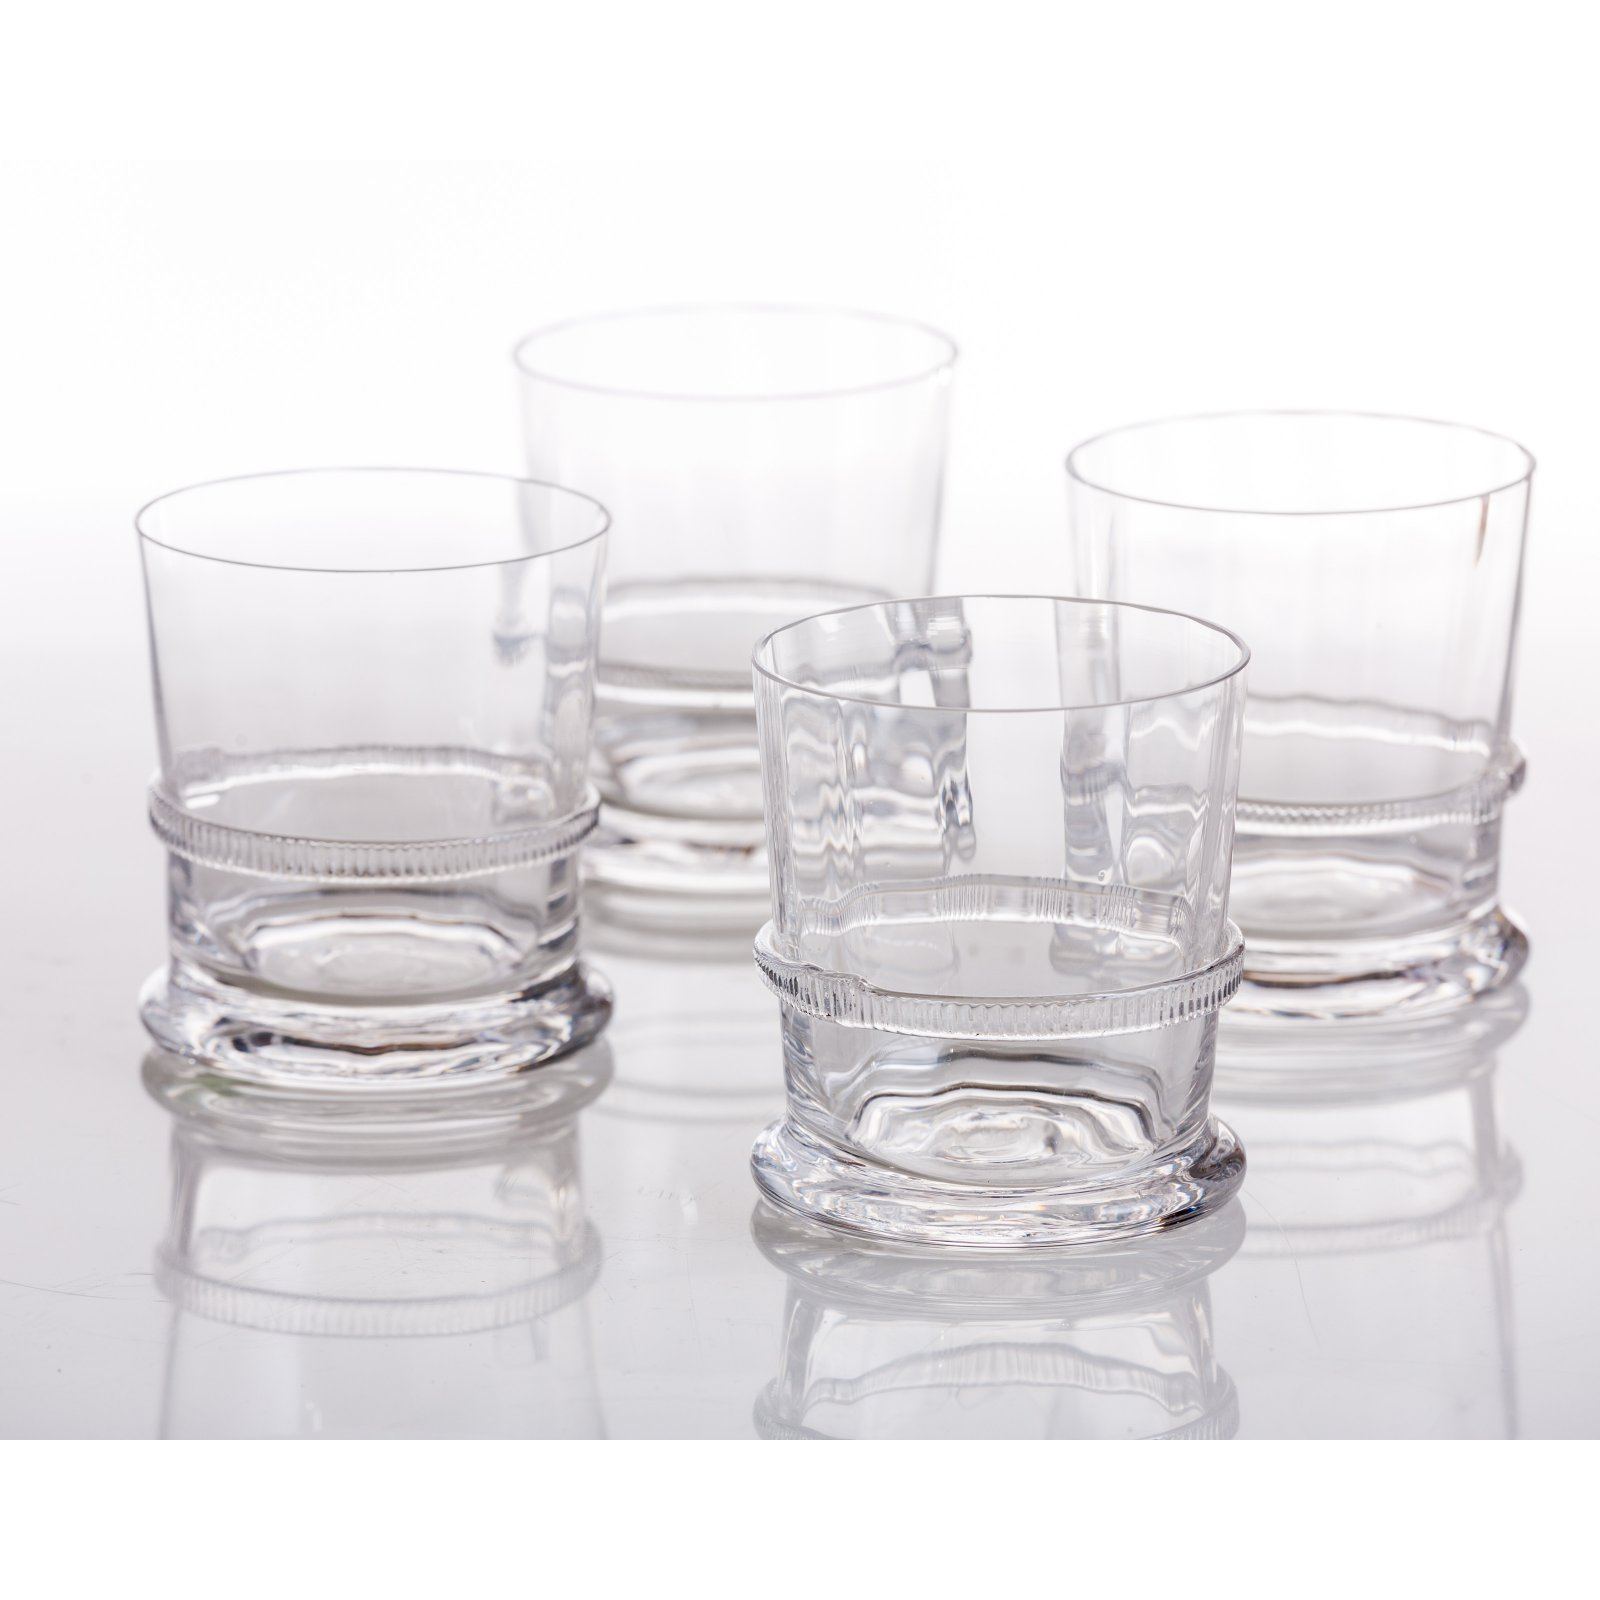 Abigails Lions Head Double Old Fashioned Glass - Set of 4